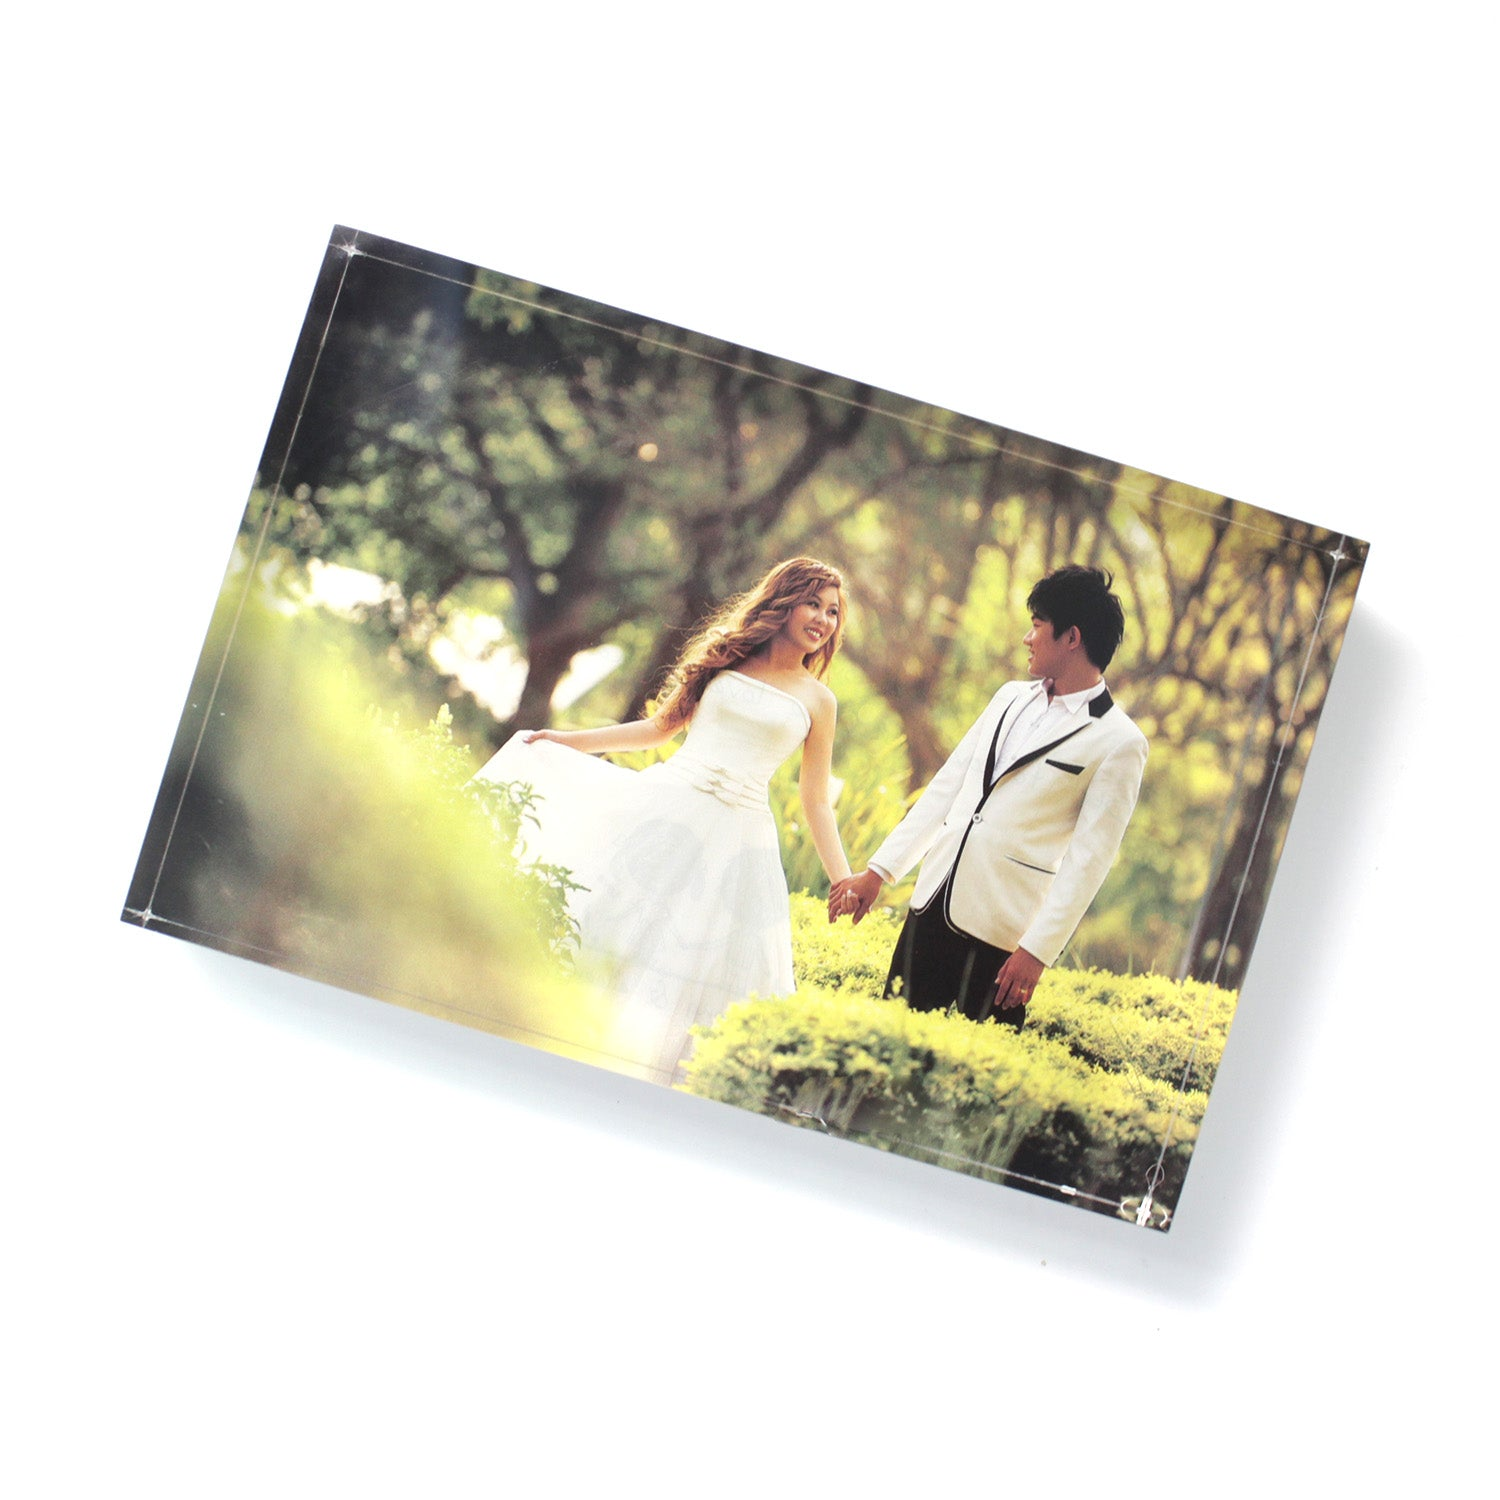 Acrylic Photo Block 6 x 4in